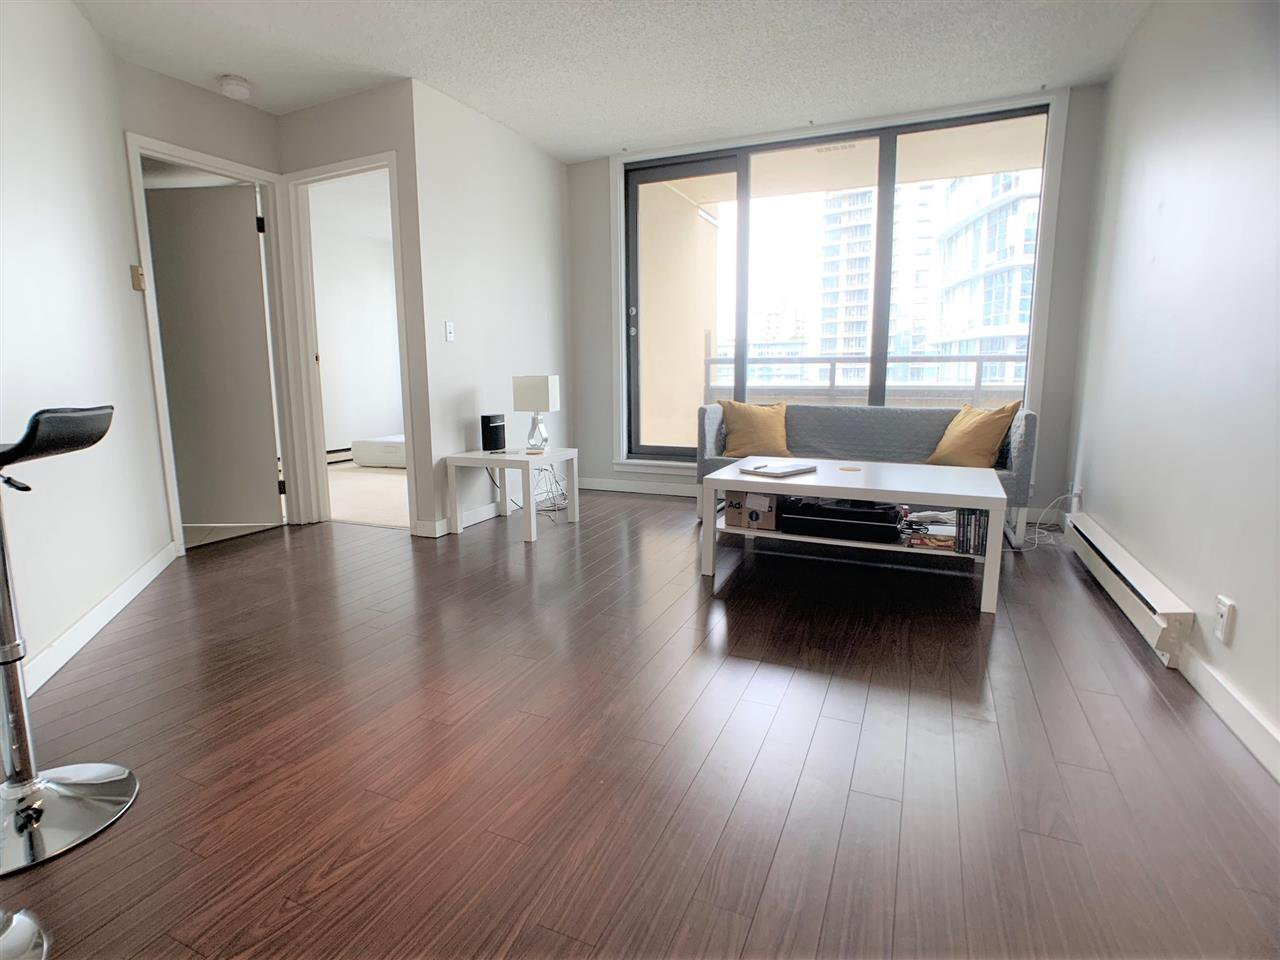 """Main Photo: 1702 789 DRAKE Street in Vancouver: Downtown VW Condo for sale in """"CENTURY TOWER"""" (Vancouver West)  : MLS®# R2471866"""